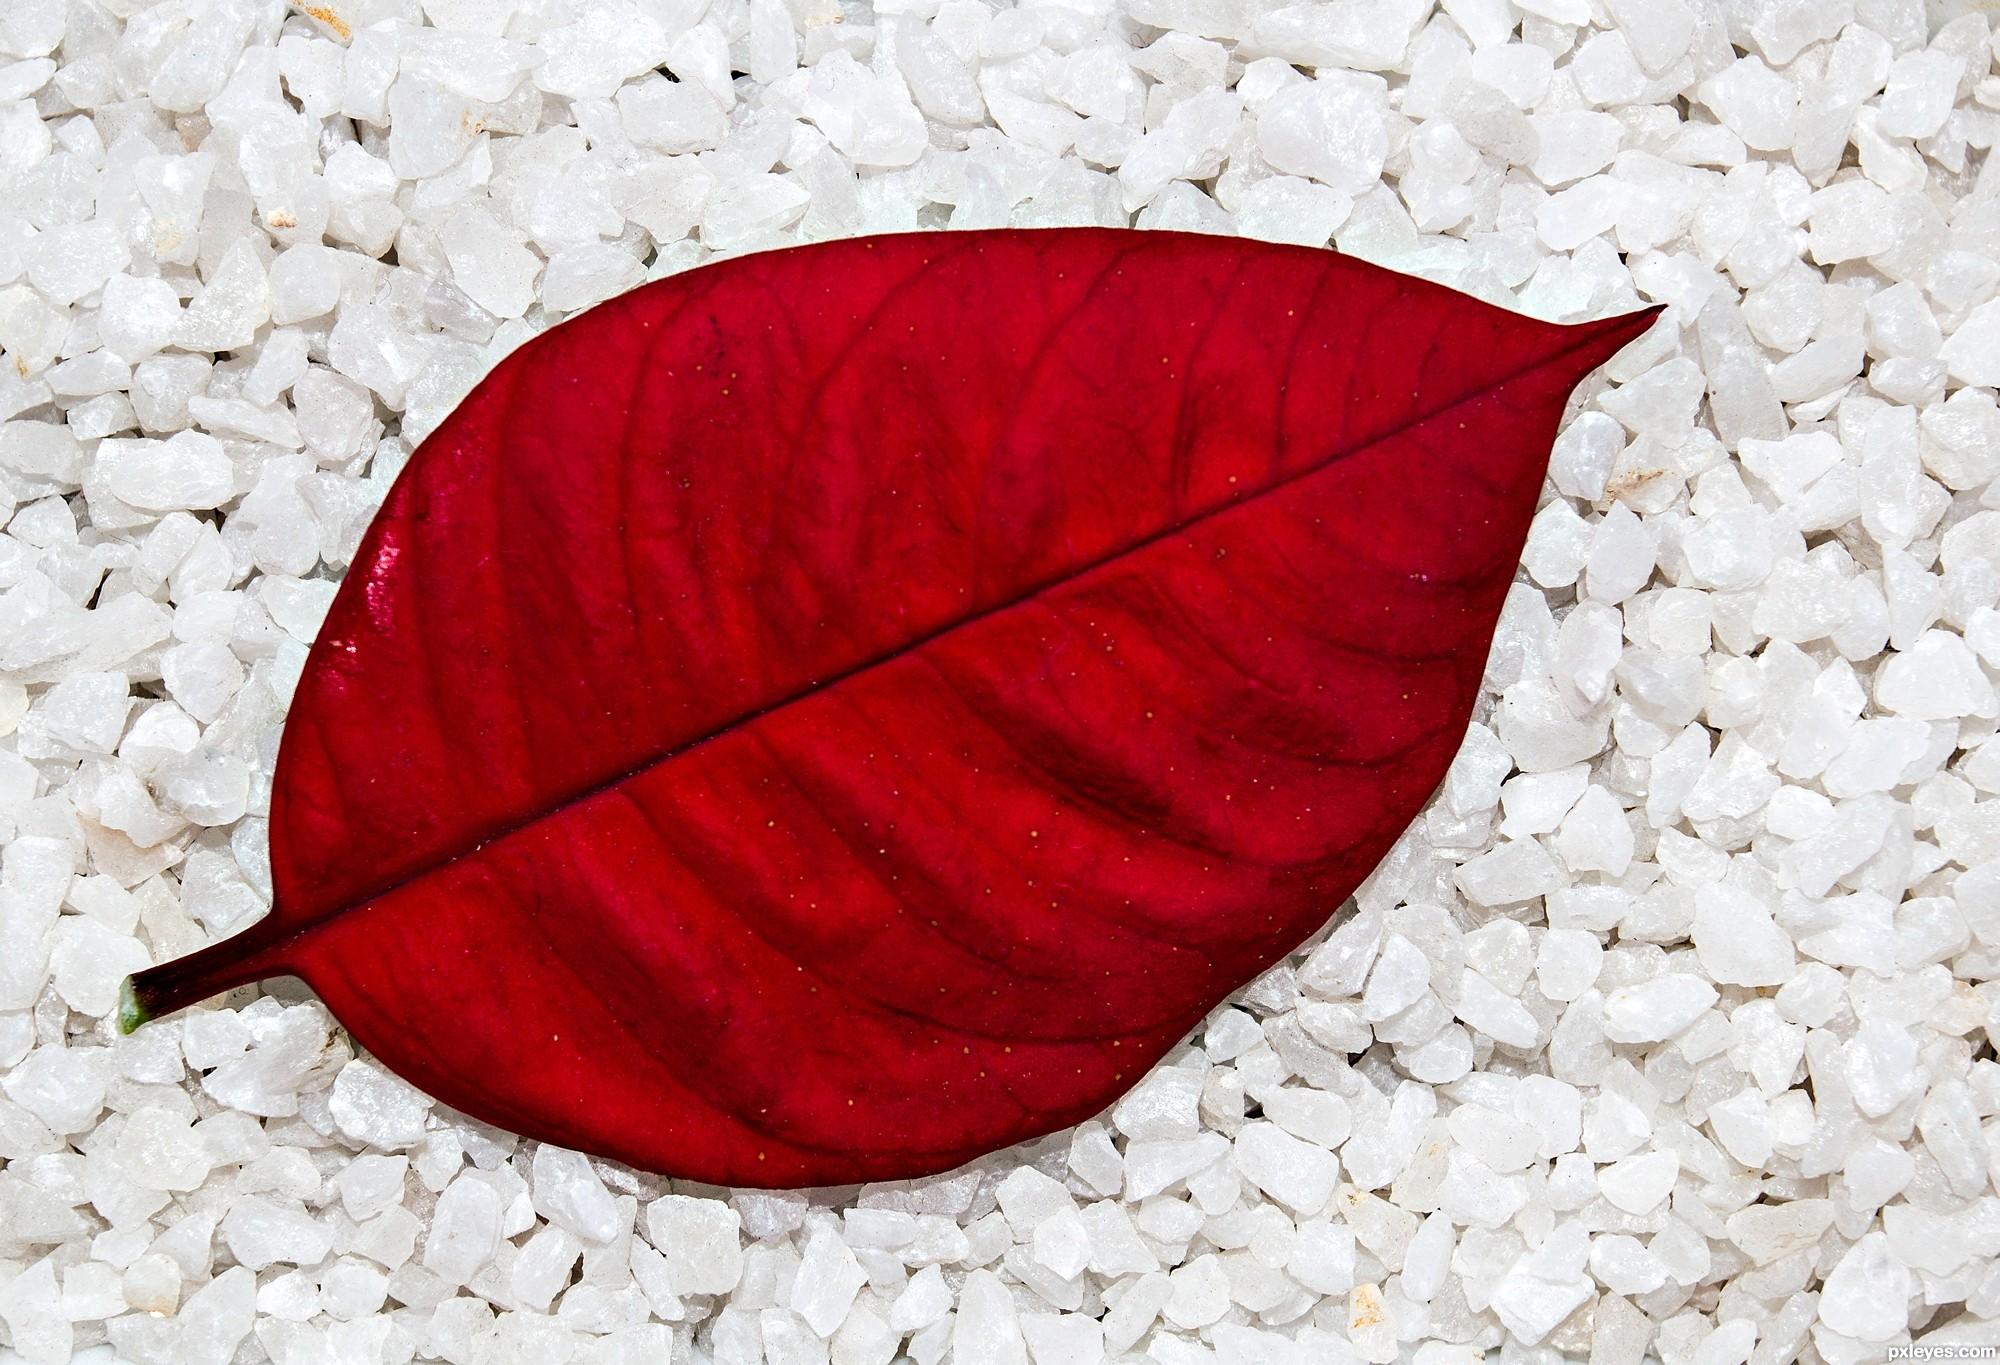 A single red leaf picture, by friiskiwi for: single leaf 2 ...